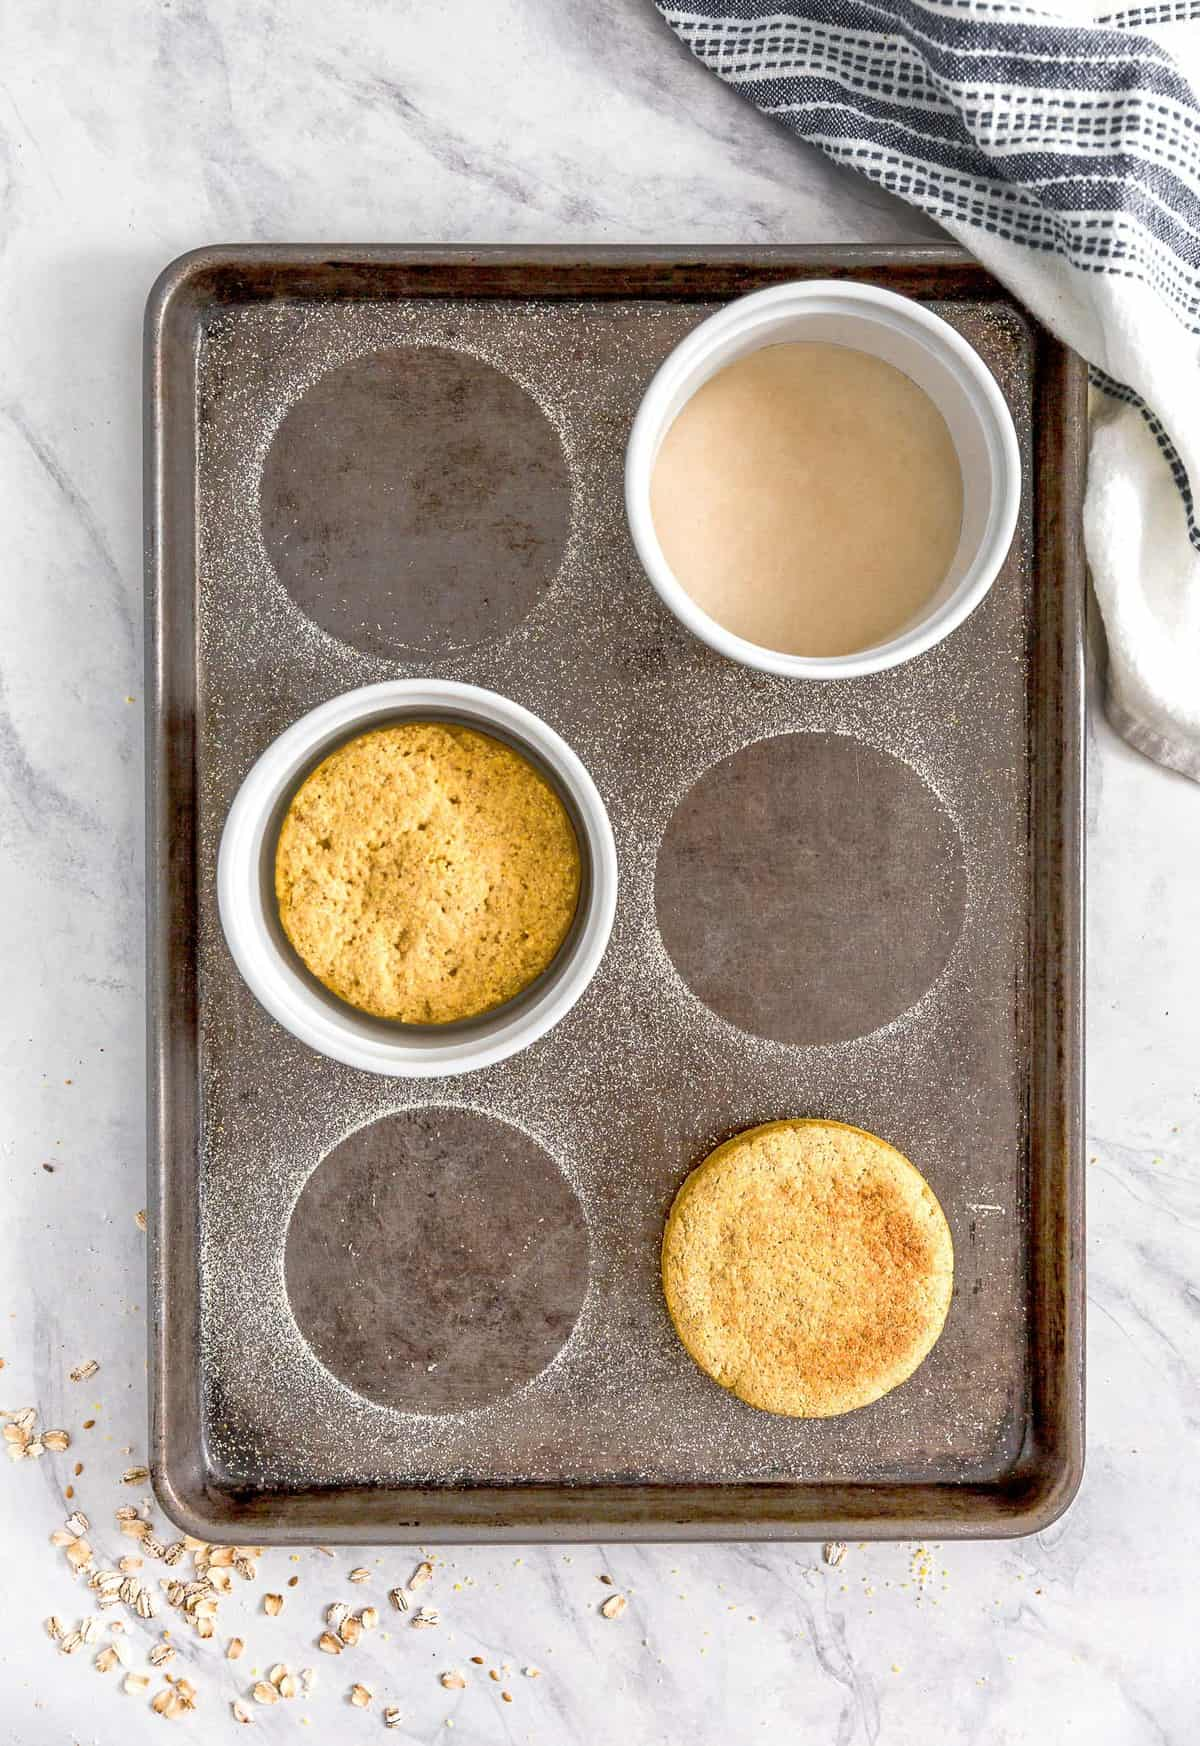 Cornmeal Biscuit, plant based, vegan, vegetarian, whole food plant based, gluten free, recipe, wfpb, healthy, healthy vegan, oil free, no refined sugar, no oil, refined sugar free, dairy free, cornmeal, biscuit, bread, english muffin, easy recipe, fast recipe, sides, breakfast